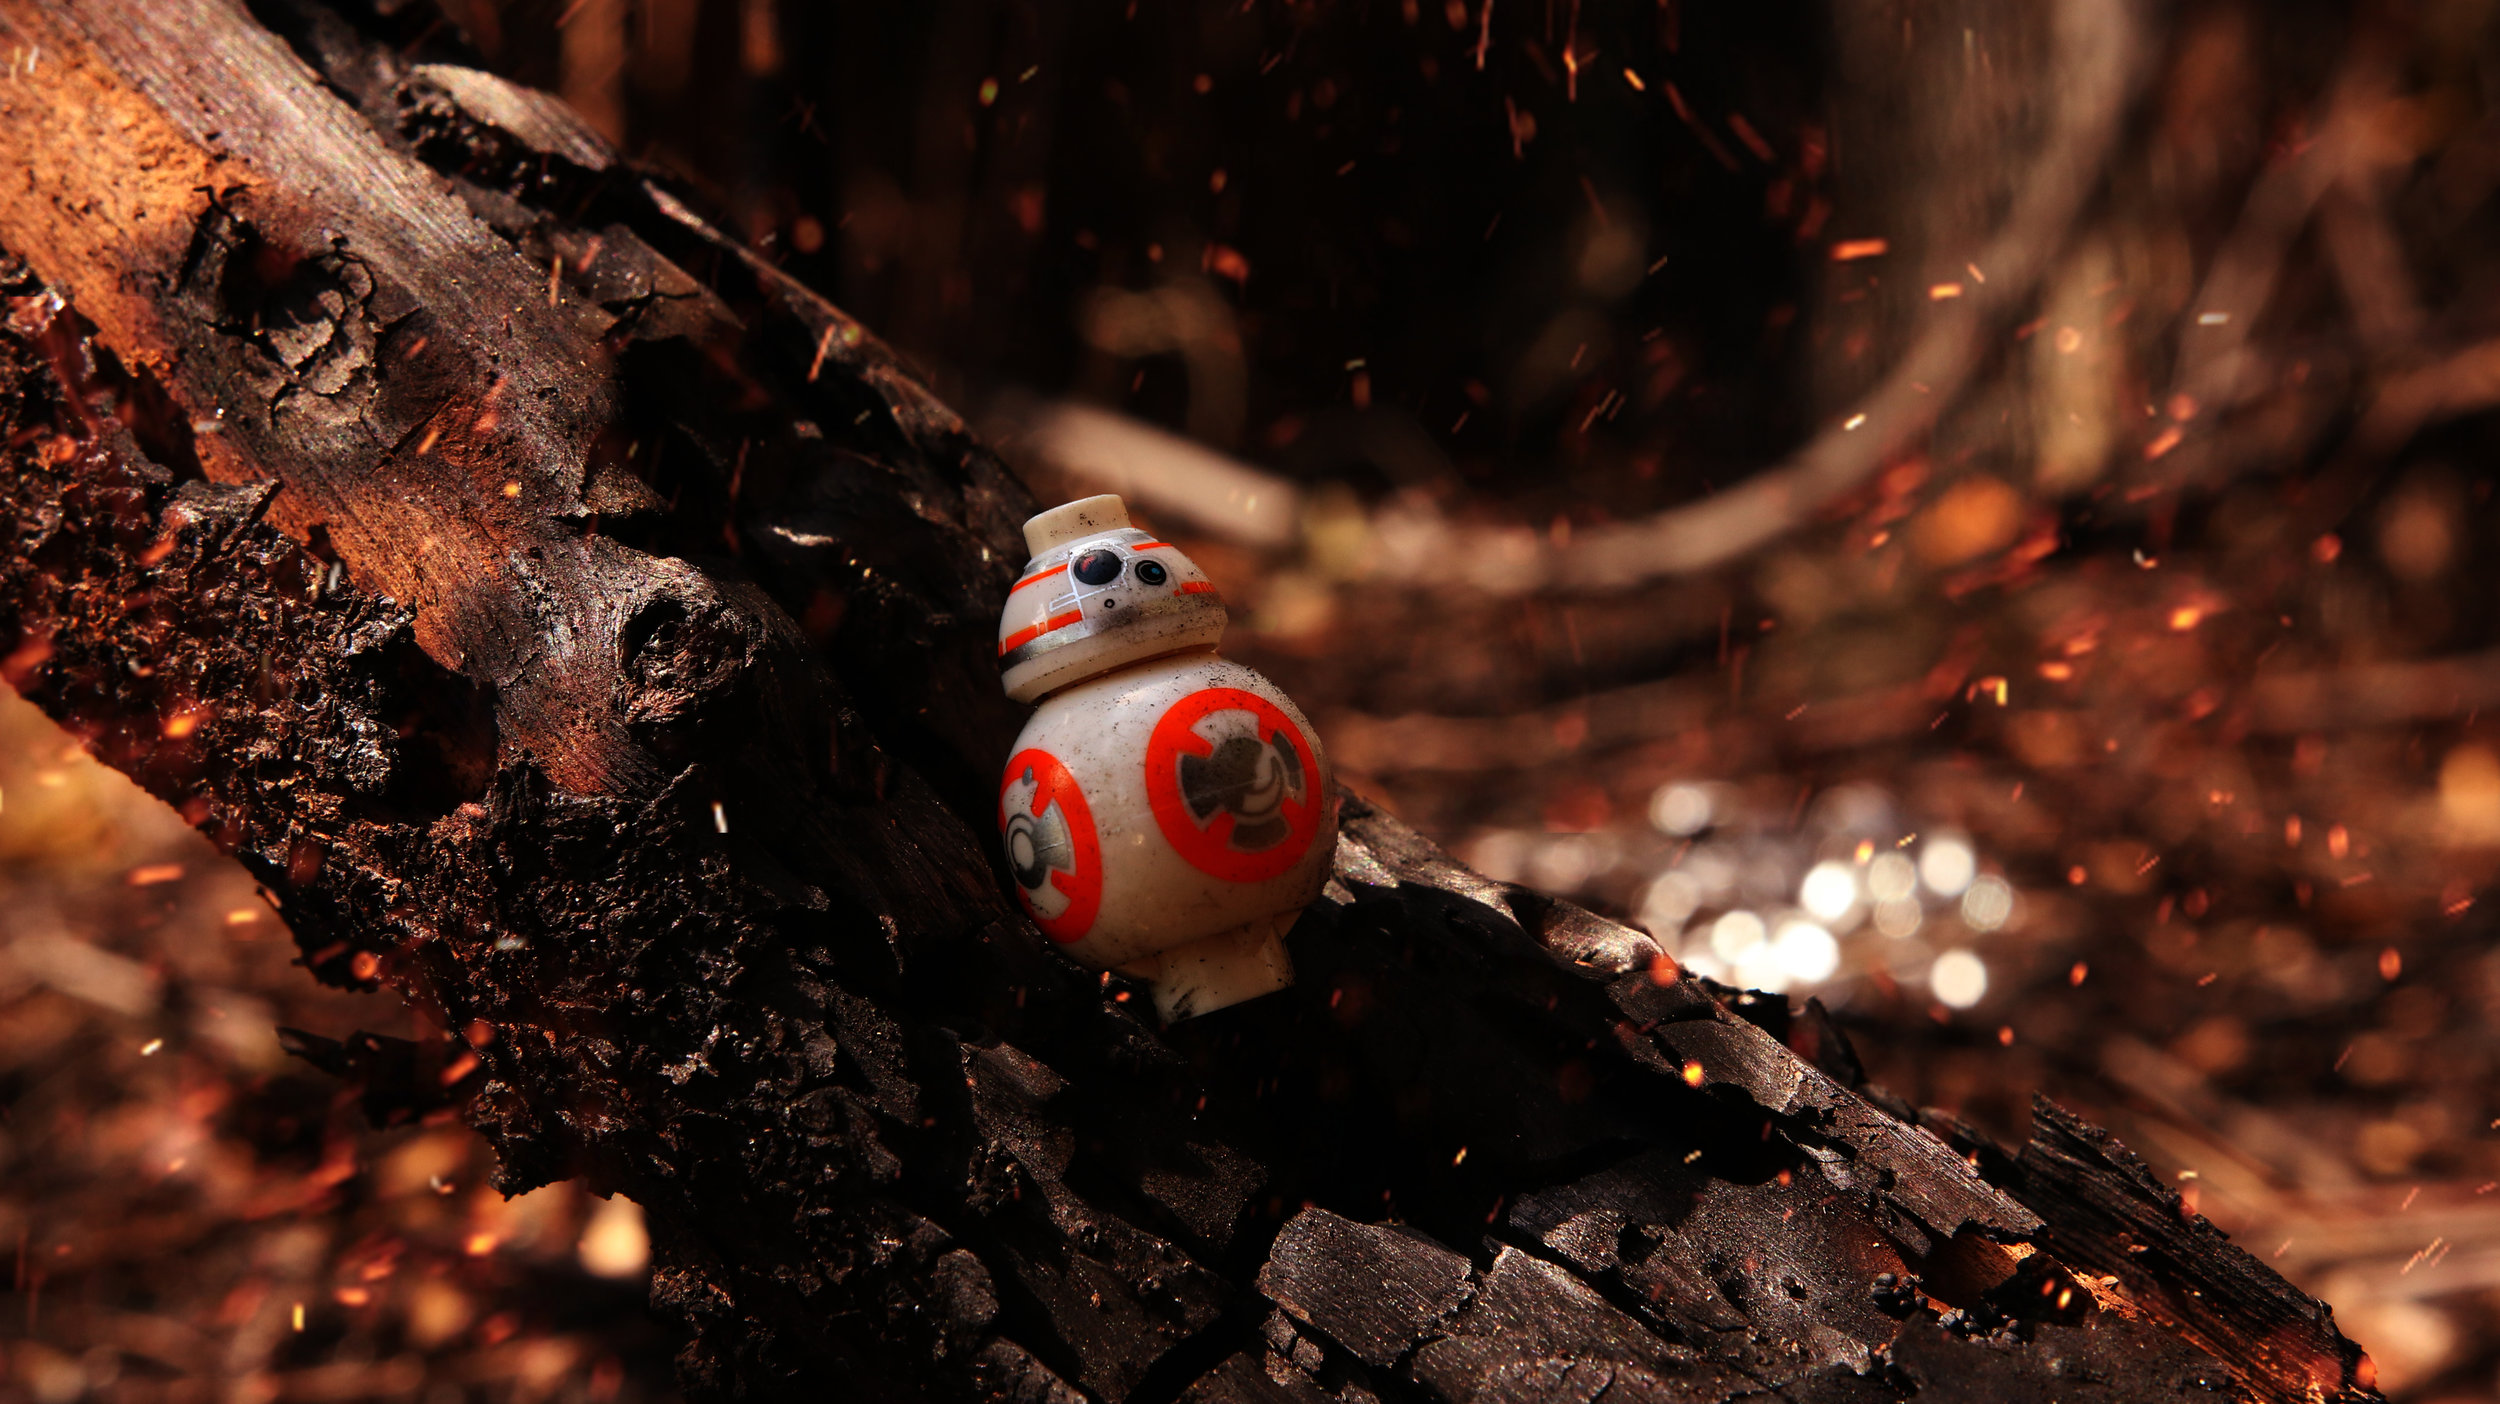 bb-8 take down.jpg